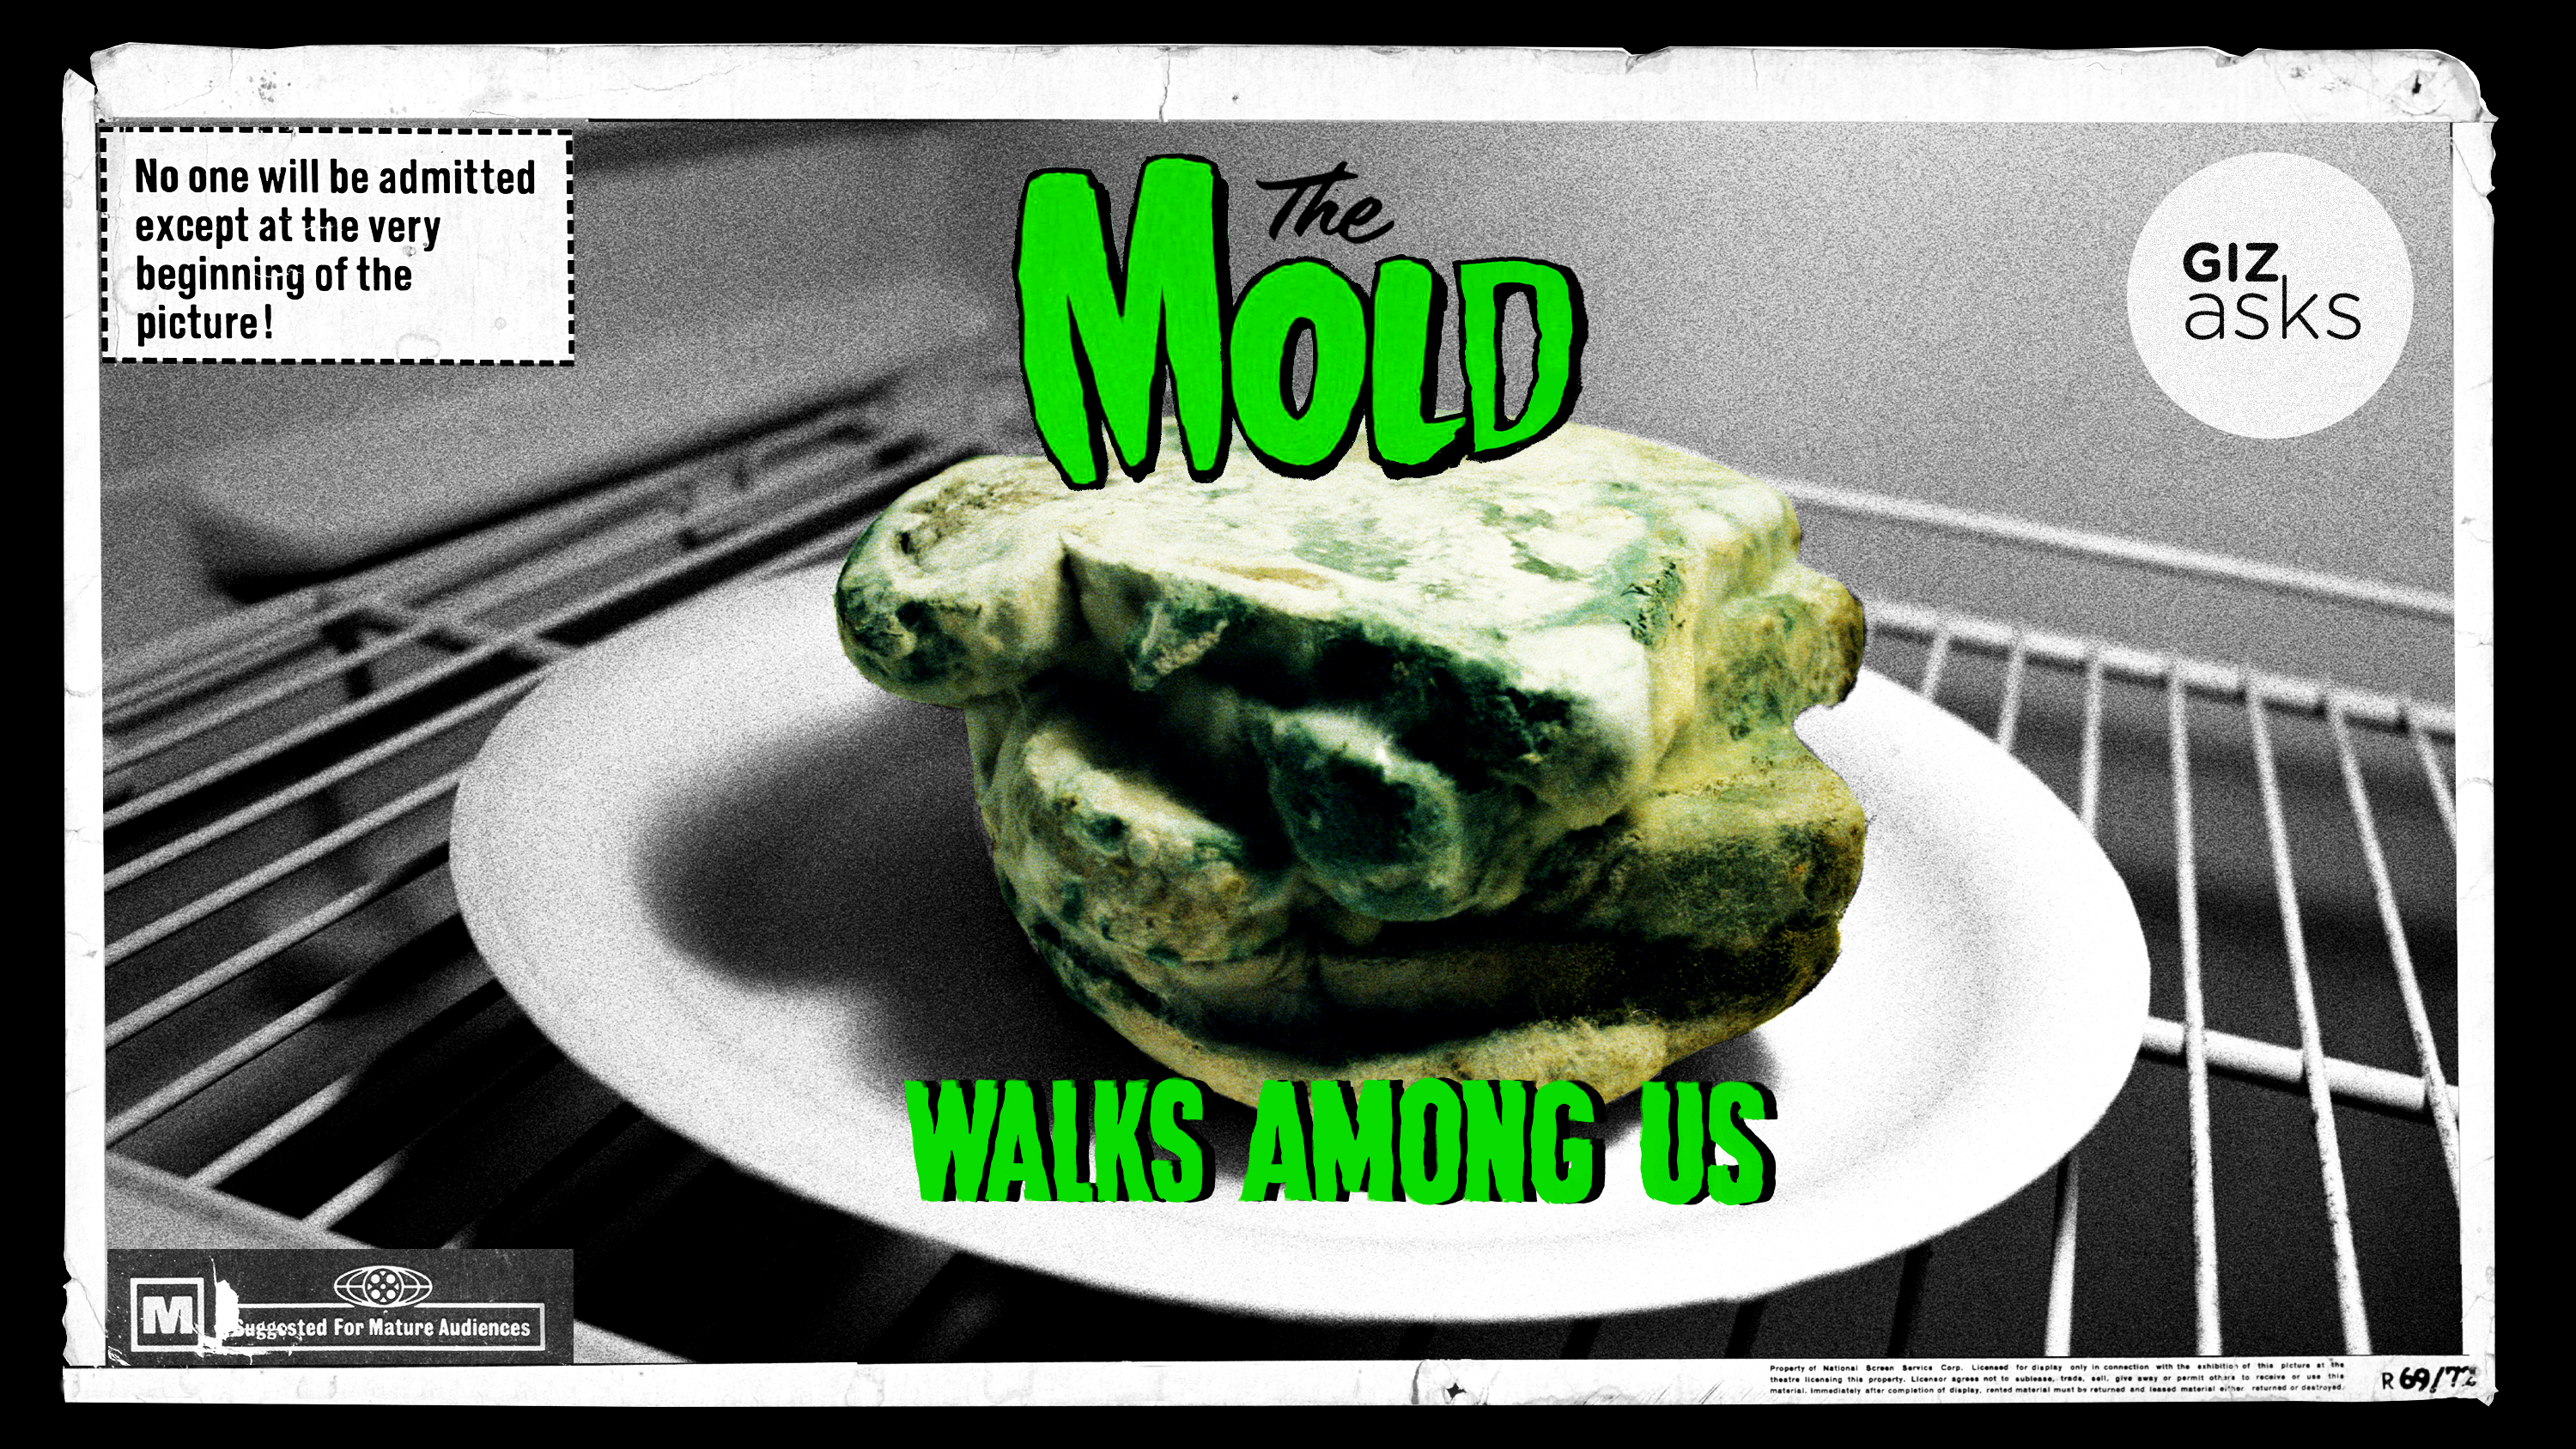 Is Mould Dangerous?